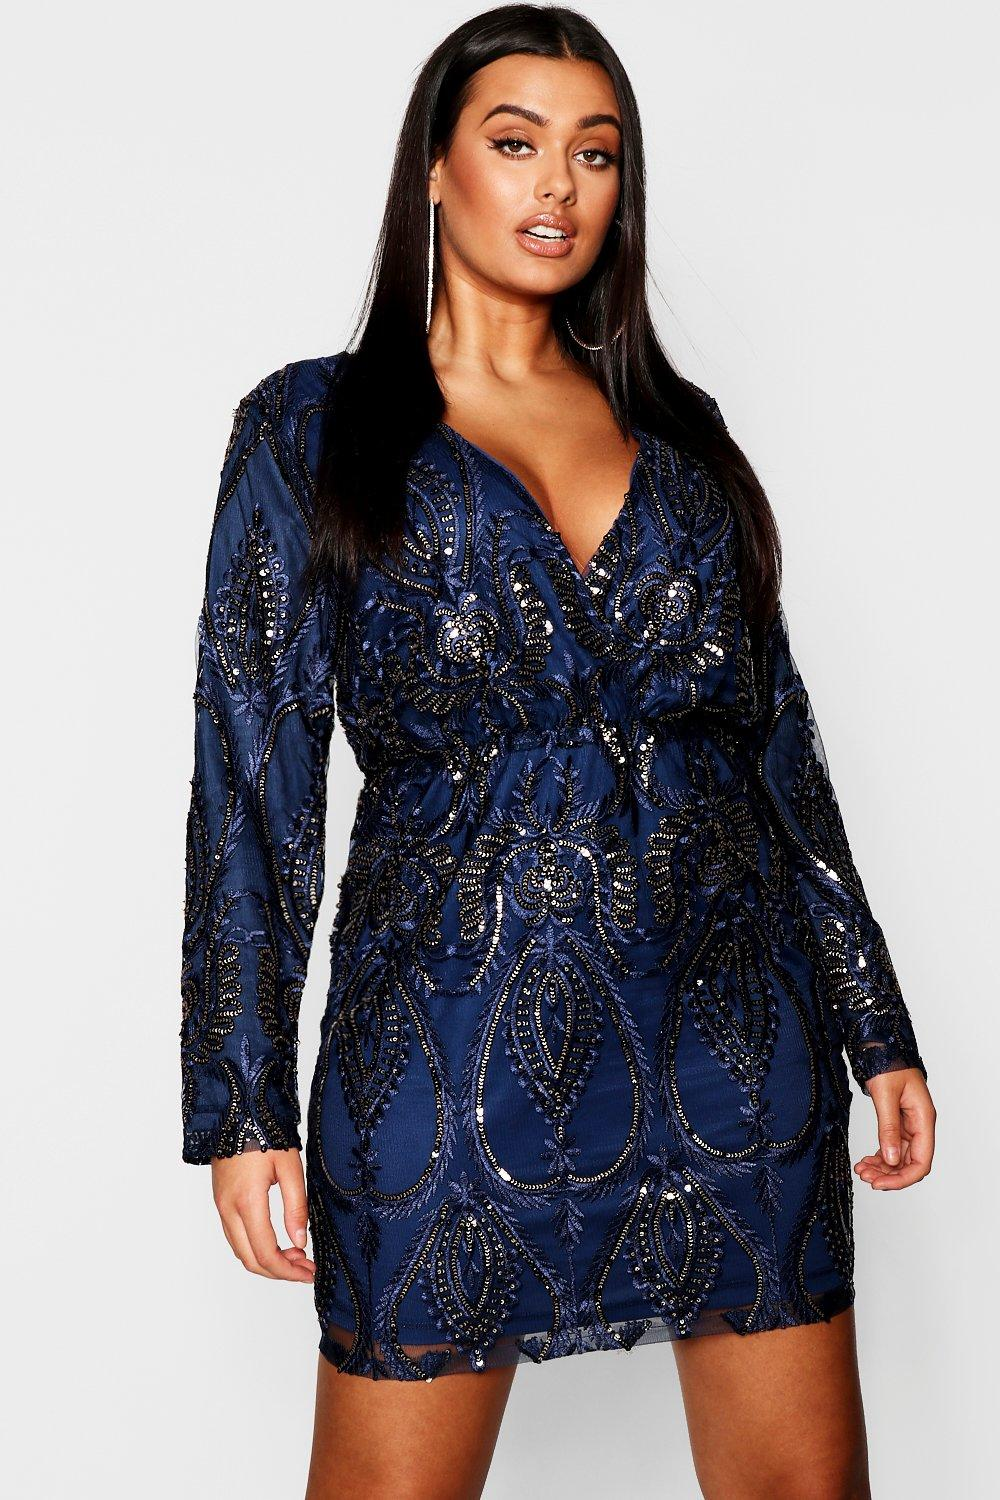 boohoo Womens Plus Lace & Sequin Plunge Mini Dress - Navy - 20, Navy